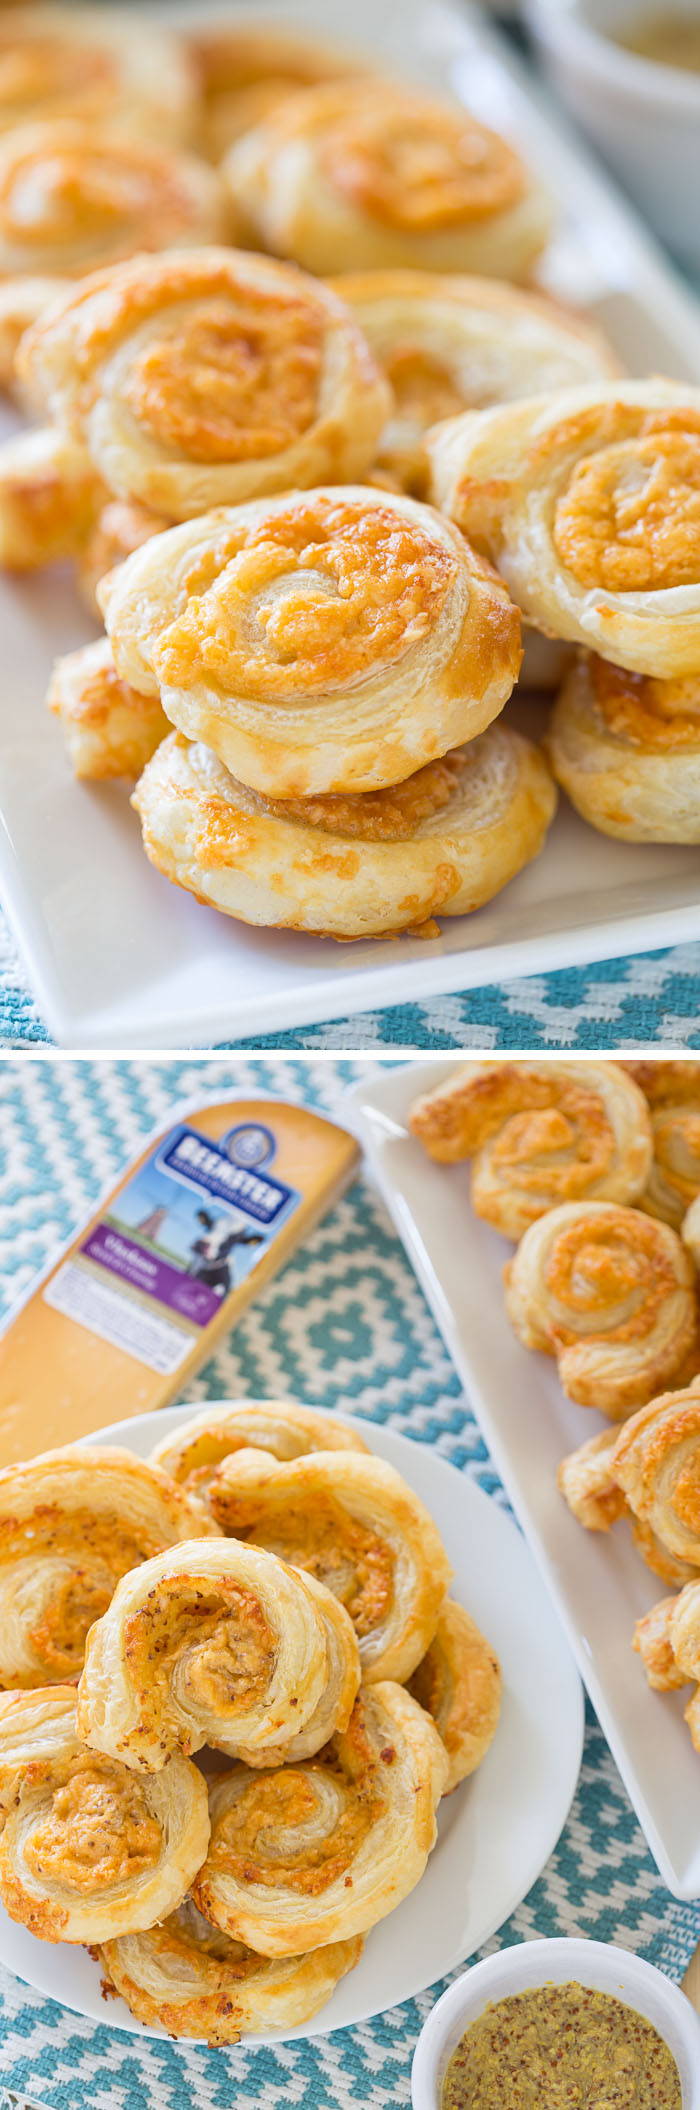 Crispy Golden Cheese Pastries with Beemster Extra-Aged Gouda